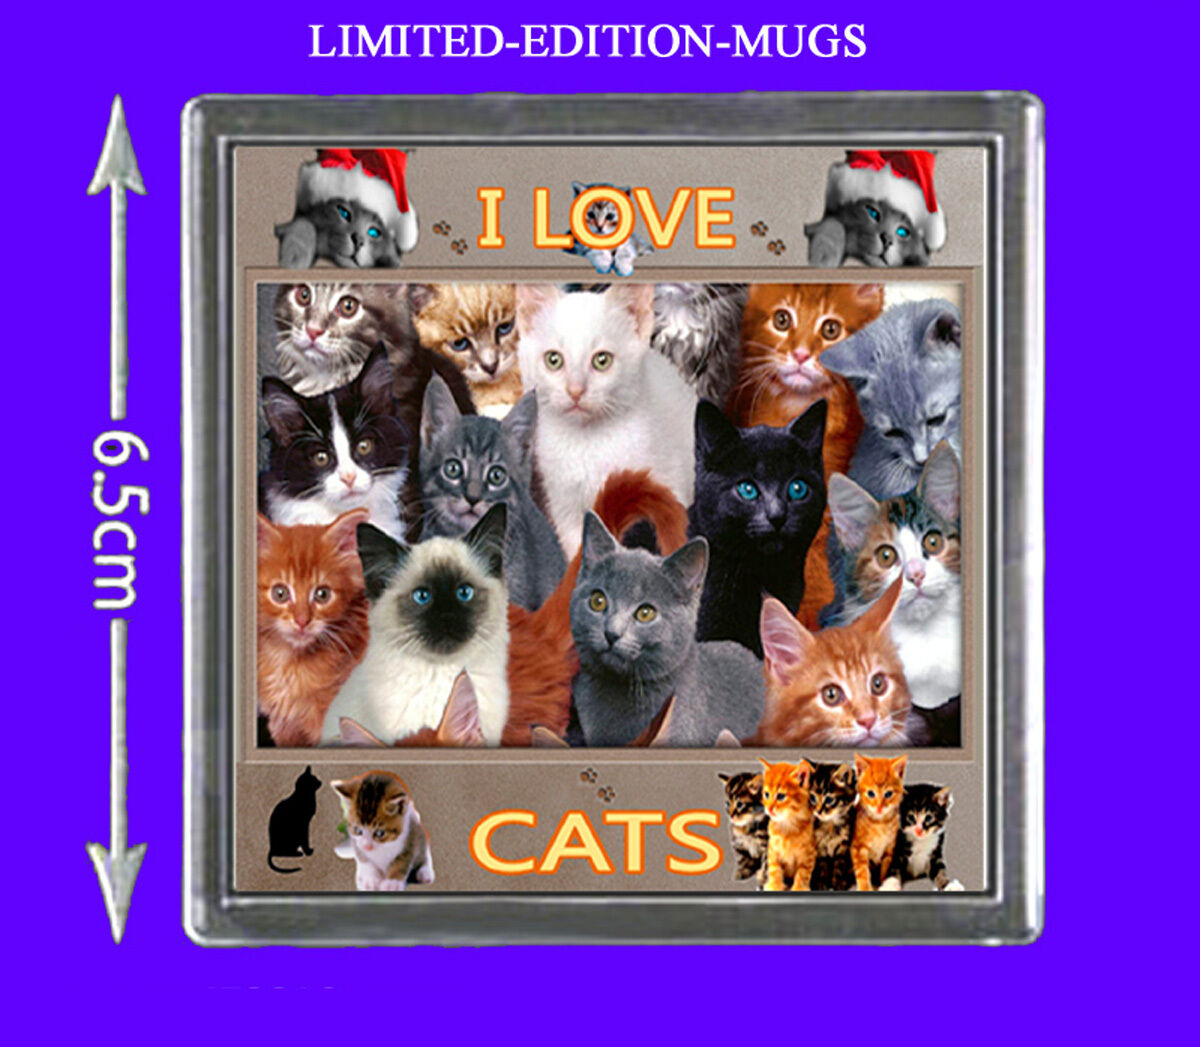 I Love Cats Fridge Magnet Gift.  Beautiful Cats And Kittens Design.